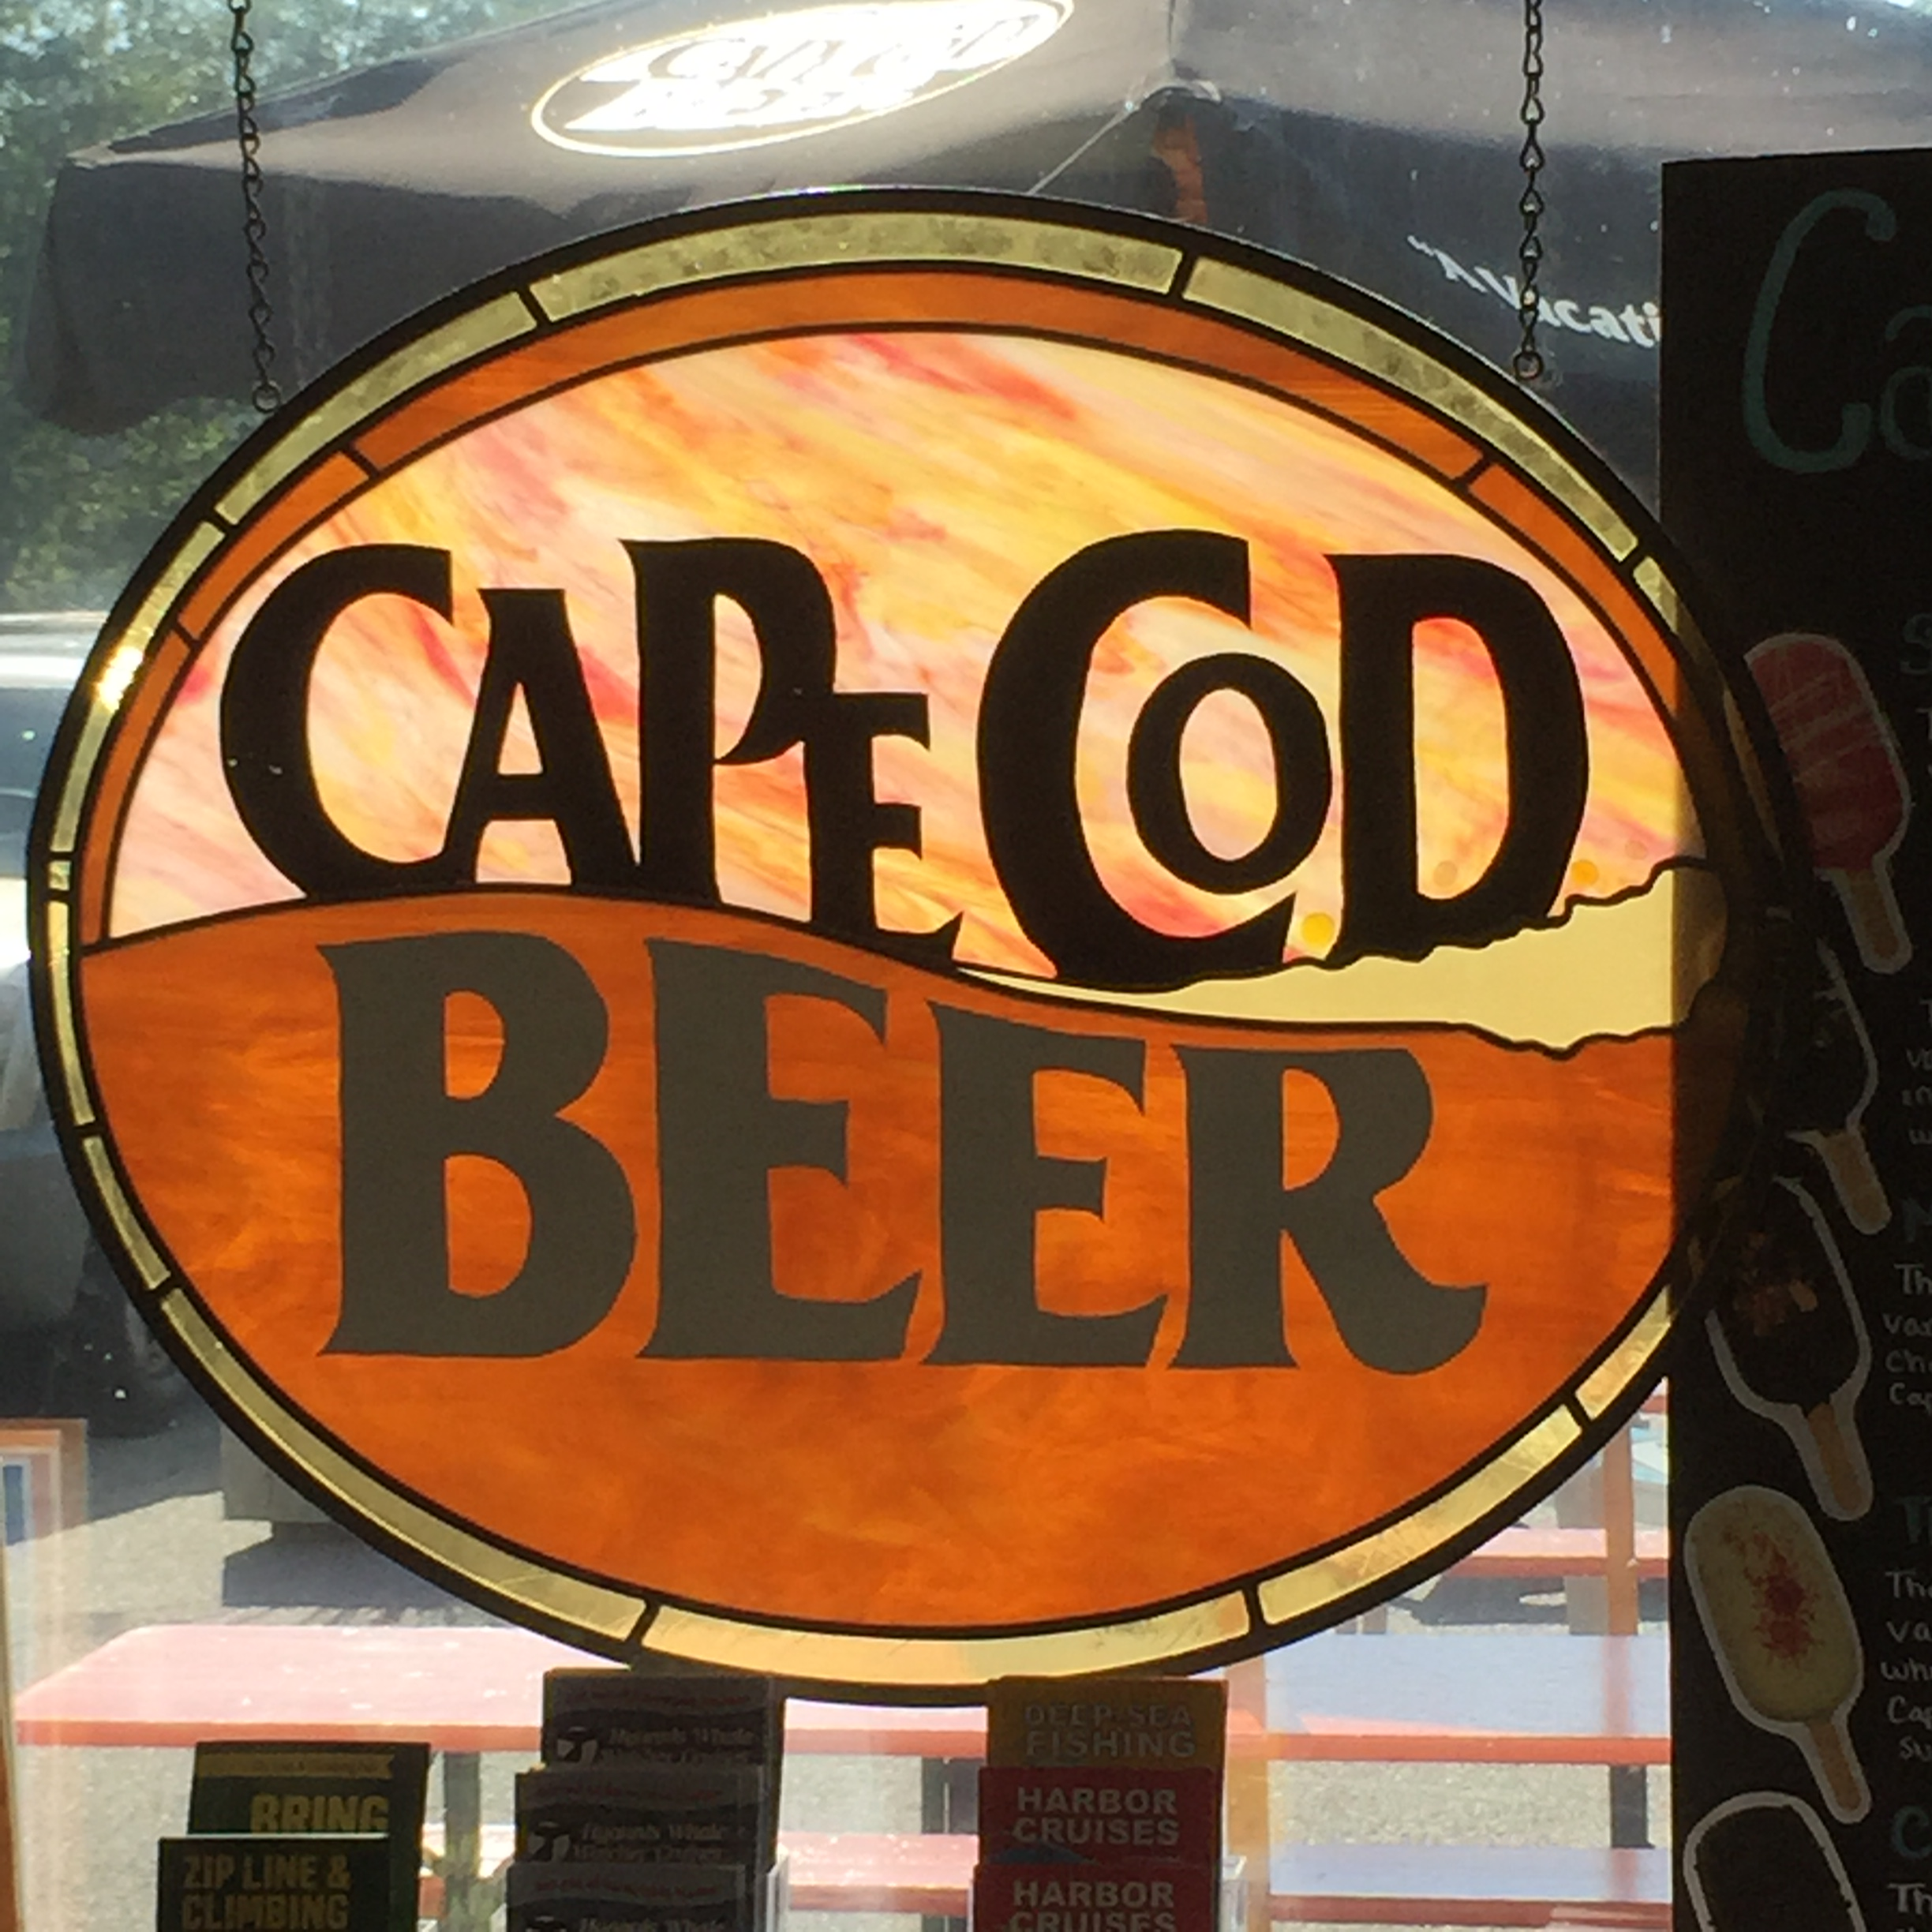 Cape Cod Beer, Hyannis, MA